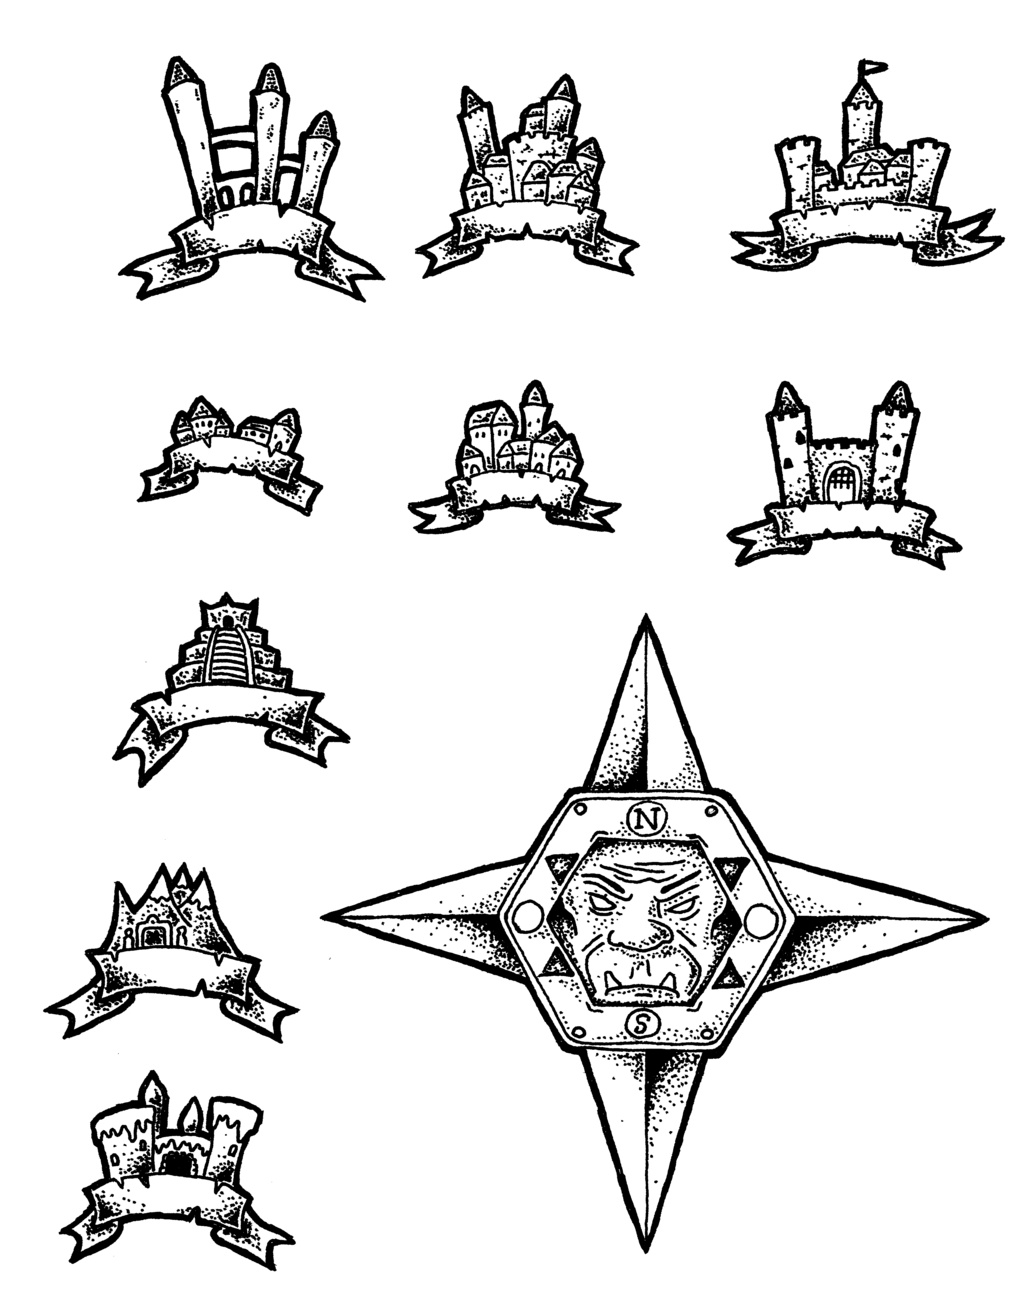 Black and white overland map symbols by darthasparagus cartography black and white overland map symbols by darthasparagus cartography chart create your own roleplaying game biocorpaavc Gallery